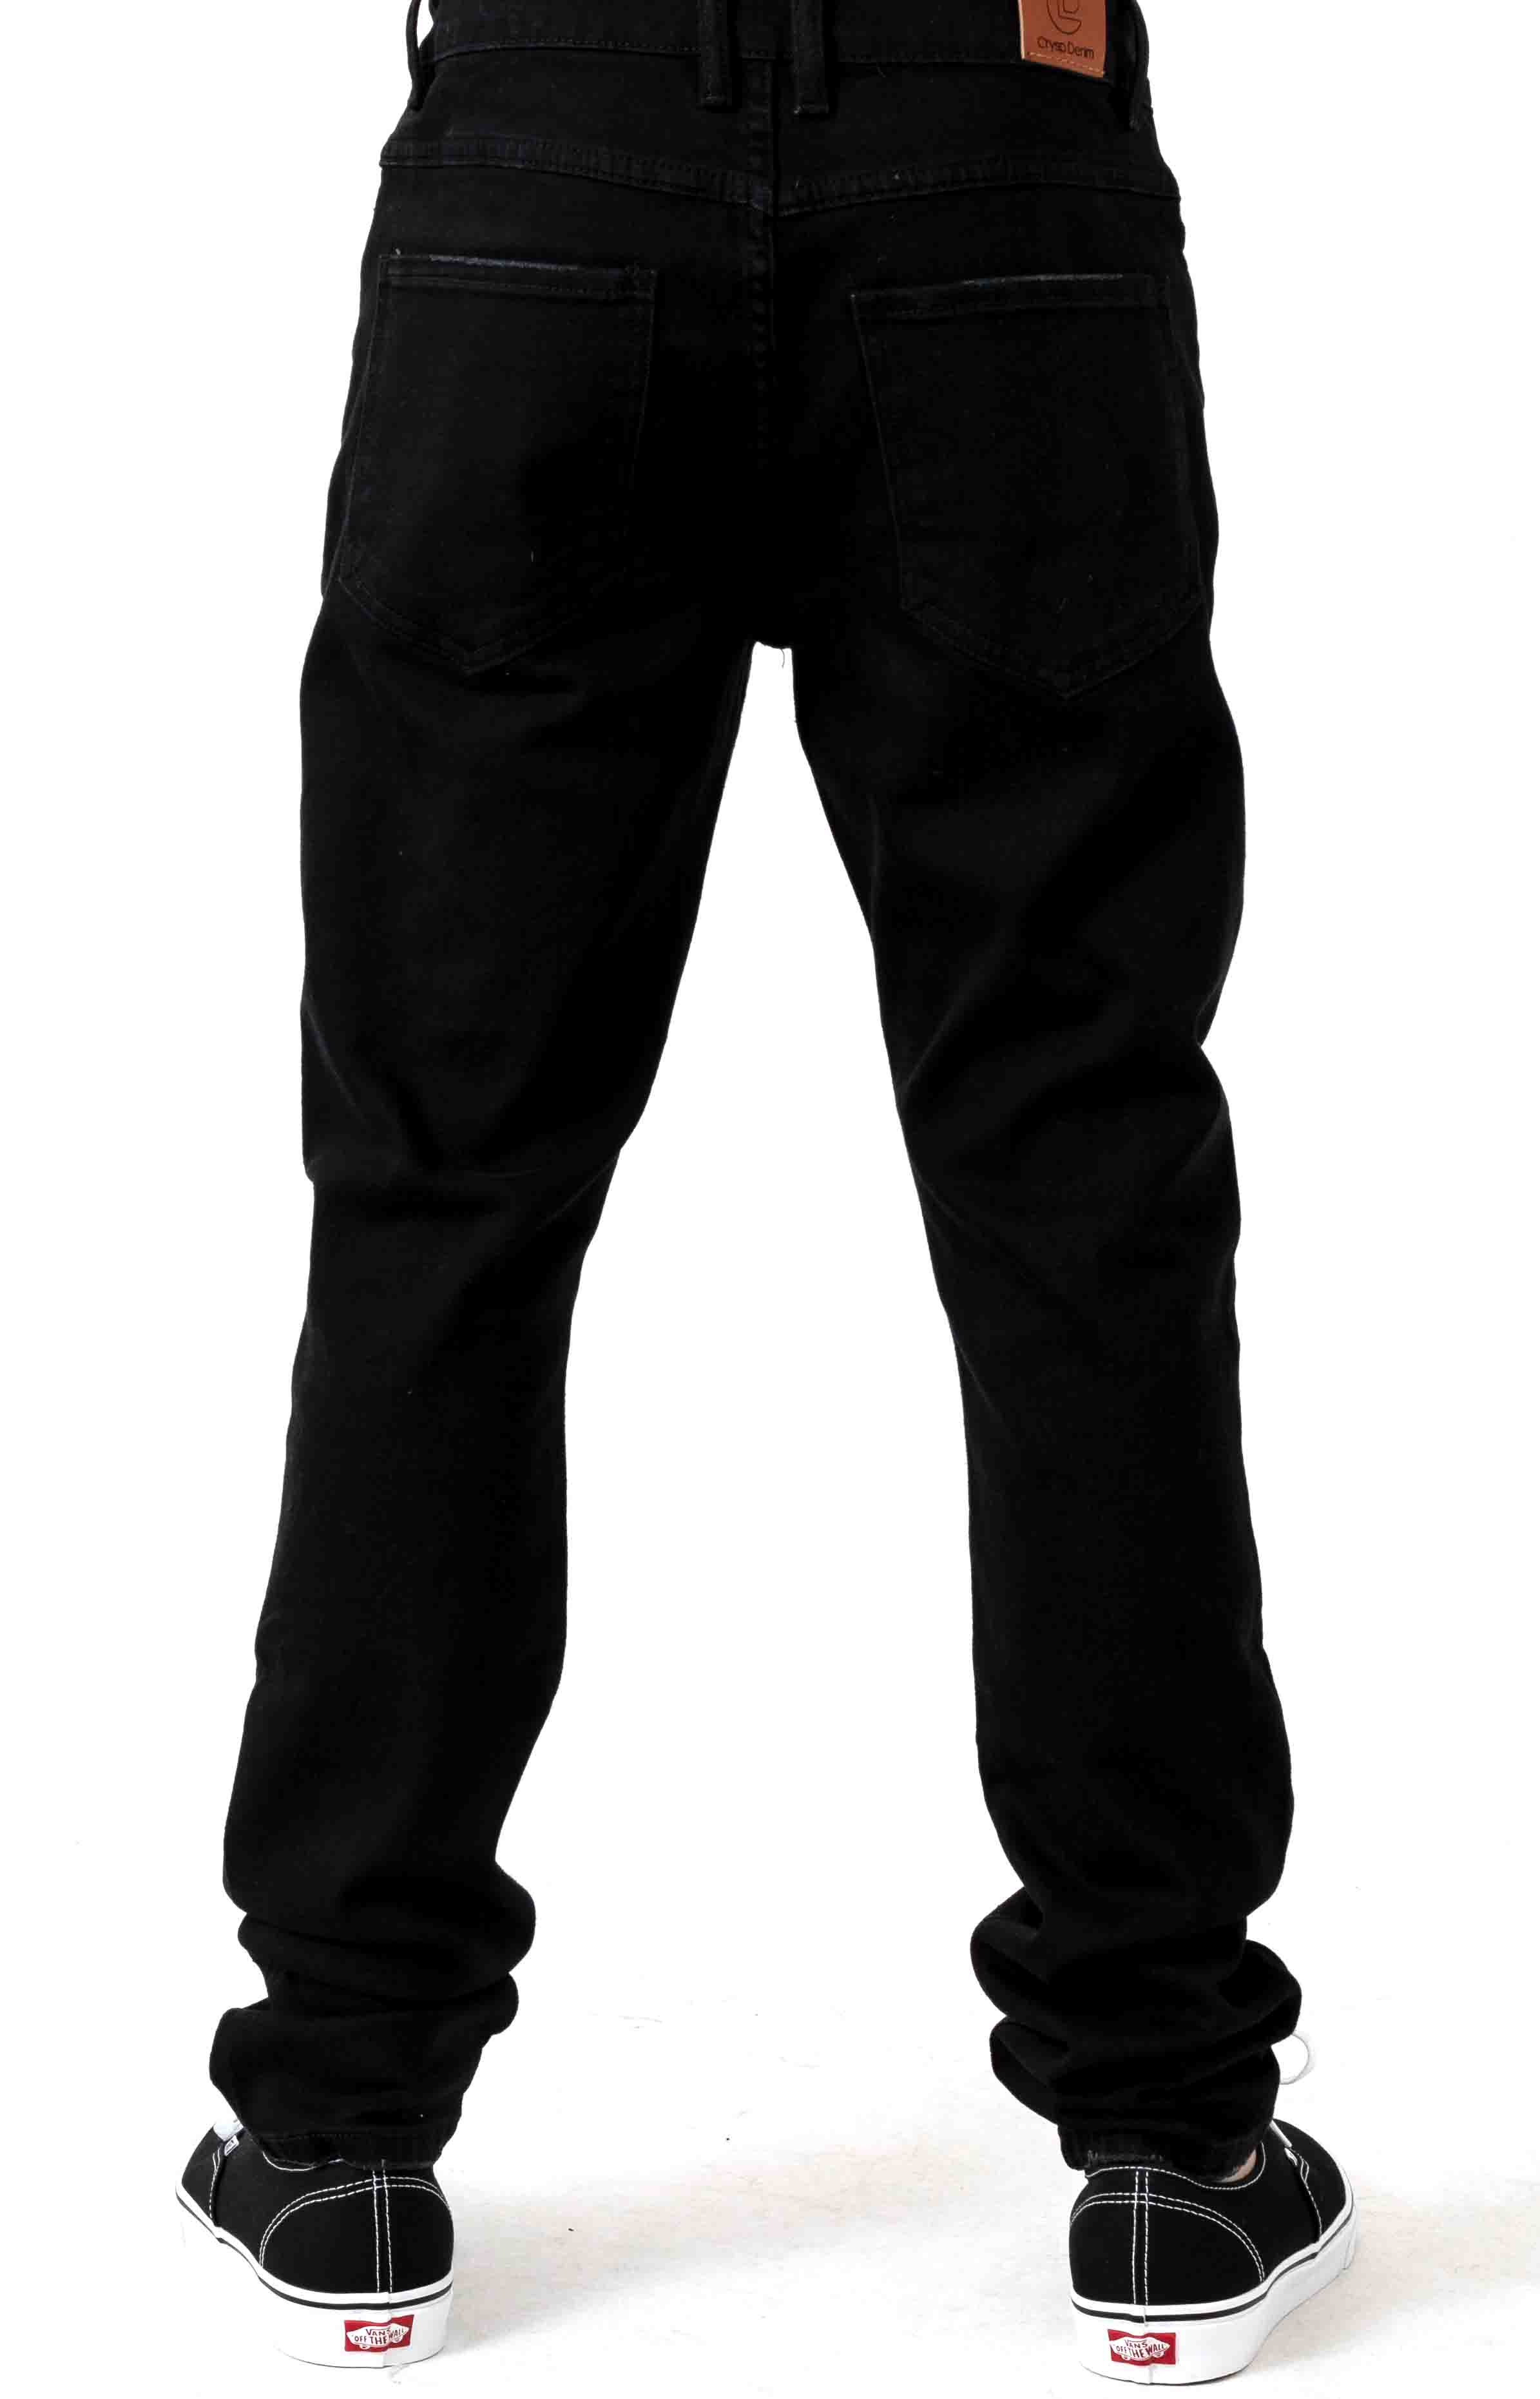 (CRYH19-140) Nowell Painted Denim Jeans - Black Painted 3